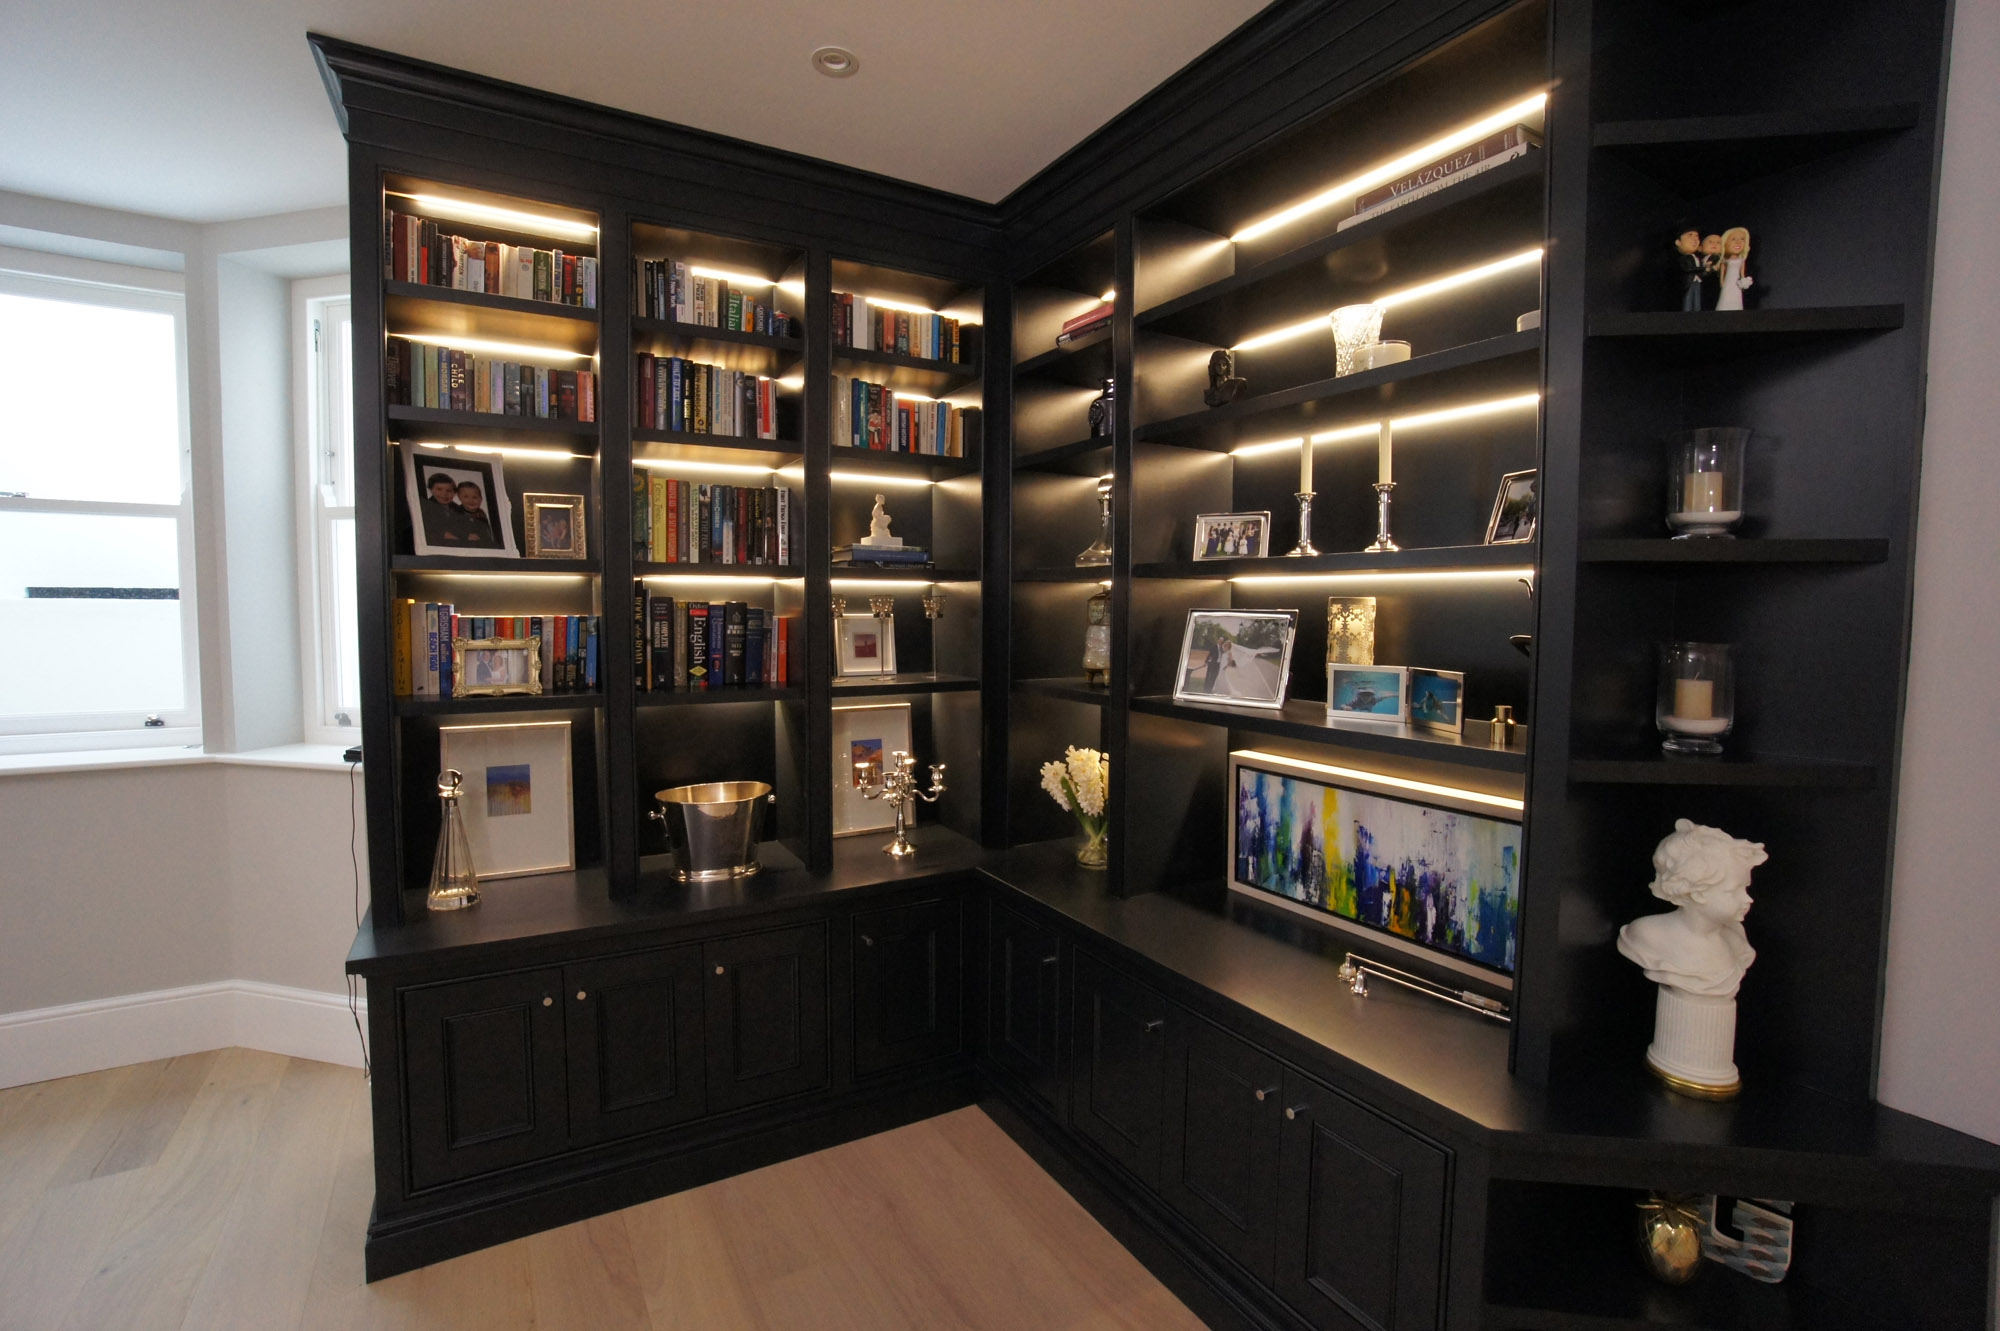 GW-Cabinetry-Interior-Solutions-Bookcases-5.jpg